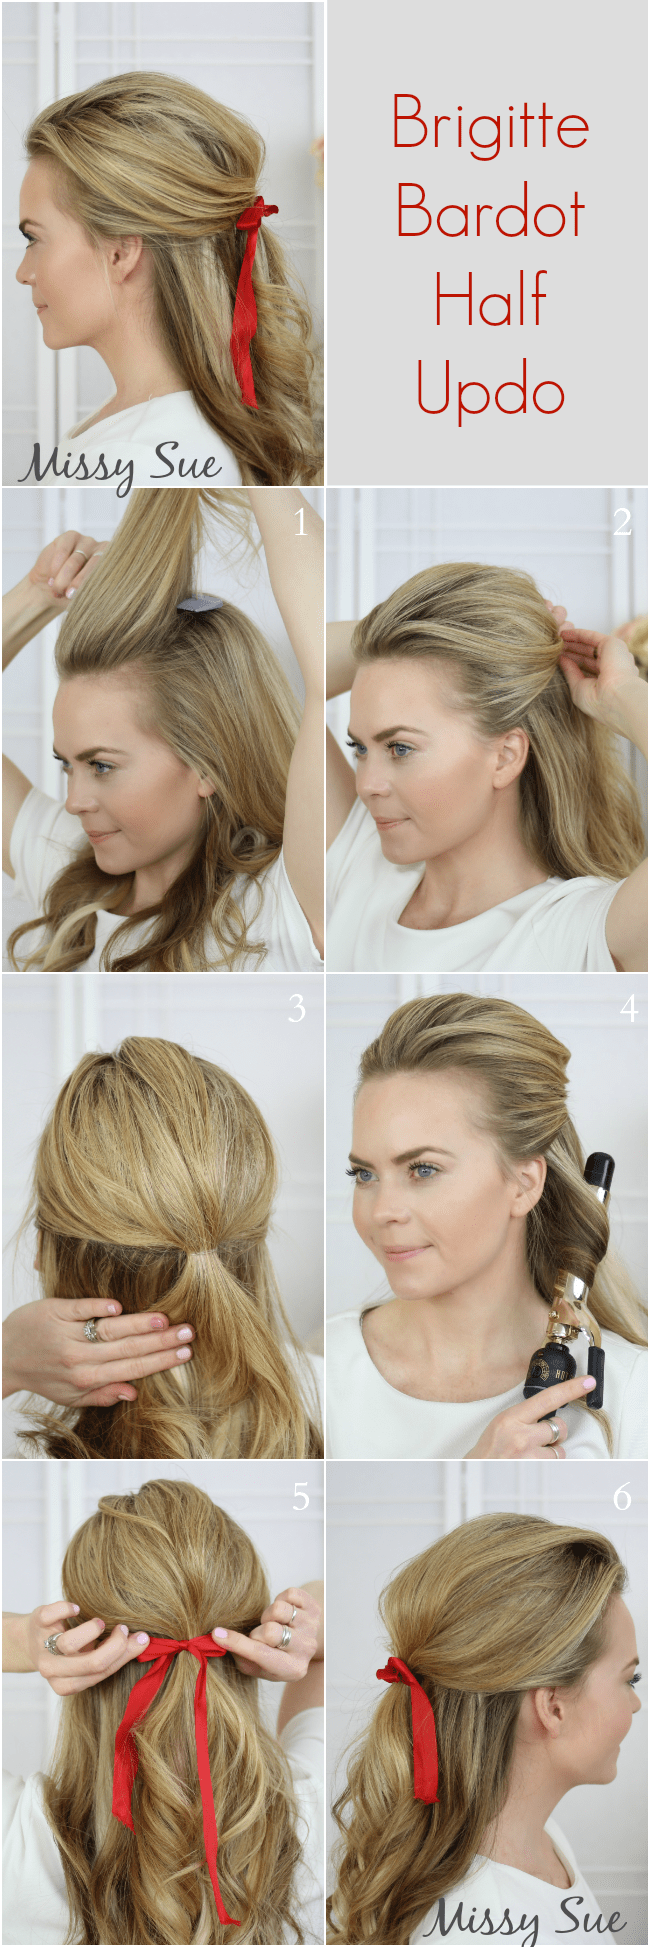 brigitte-bardot-half-up-do-missy-sue-blog